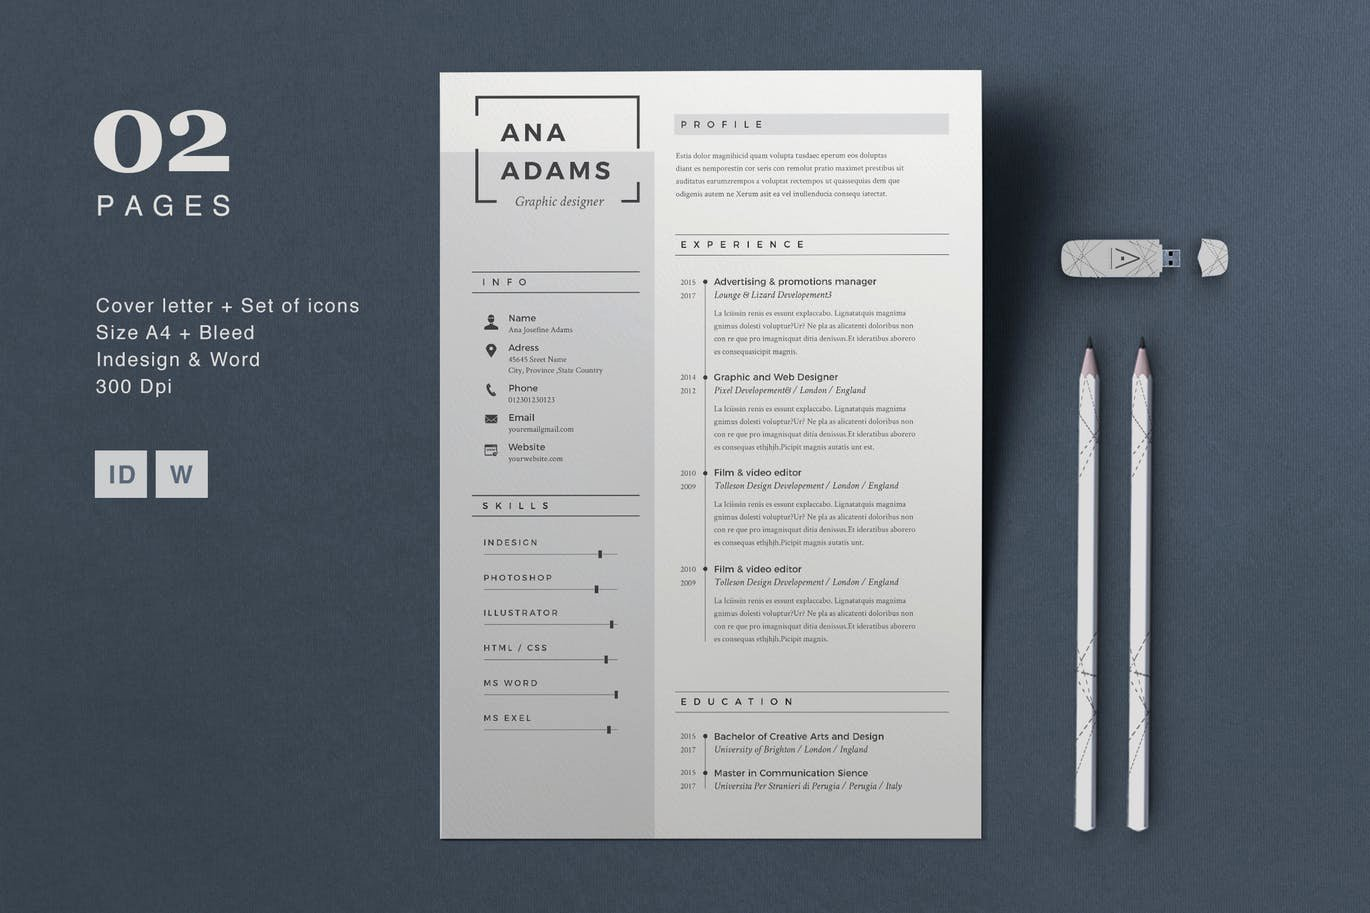 Free Graphic Design Template Best Of 20 Beautiful & Free Resume Templates for Designers